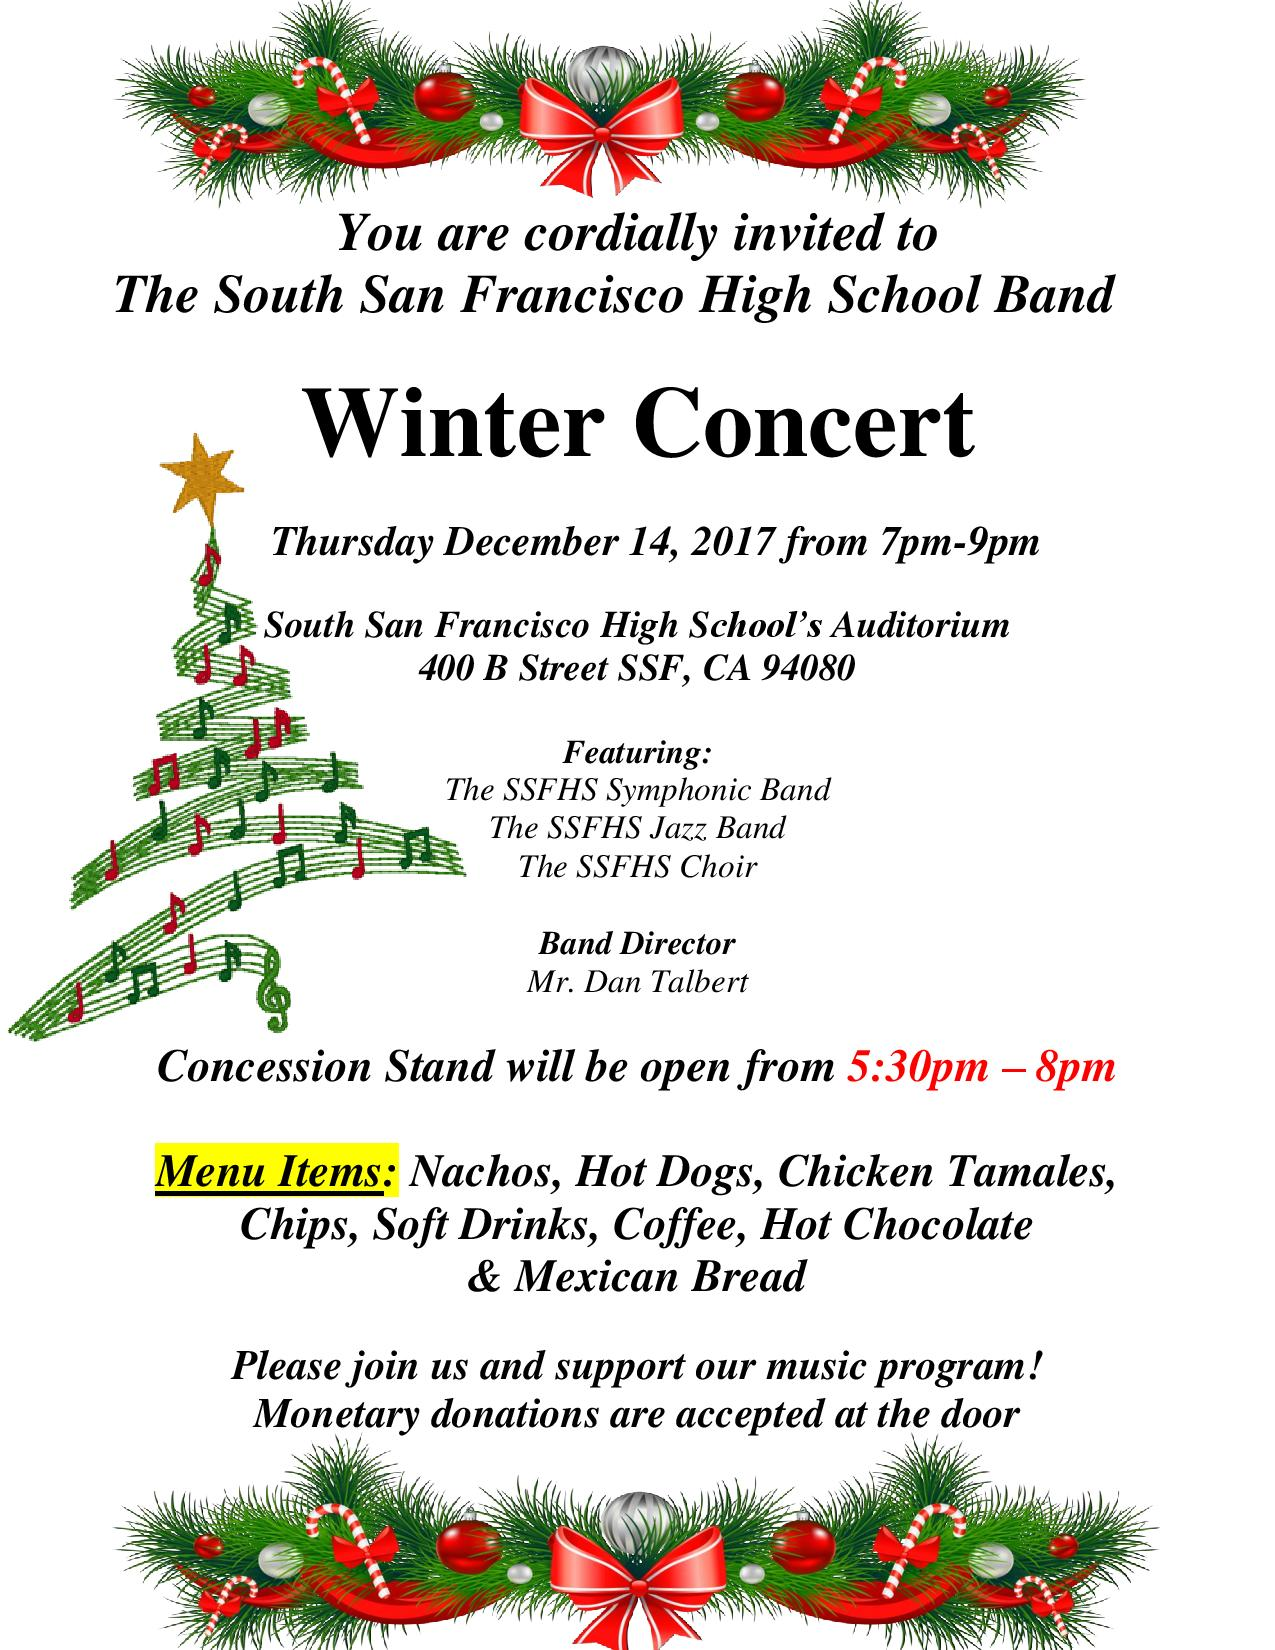 SSFHS Band Announces Annual Winter Concert to be held Dec. 14, 2017